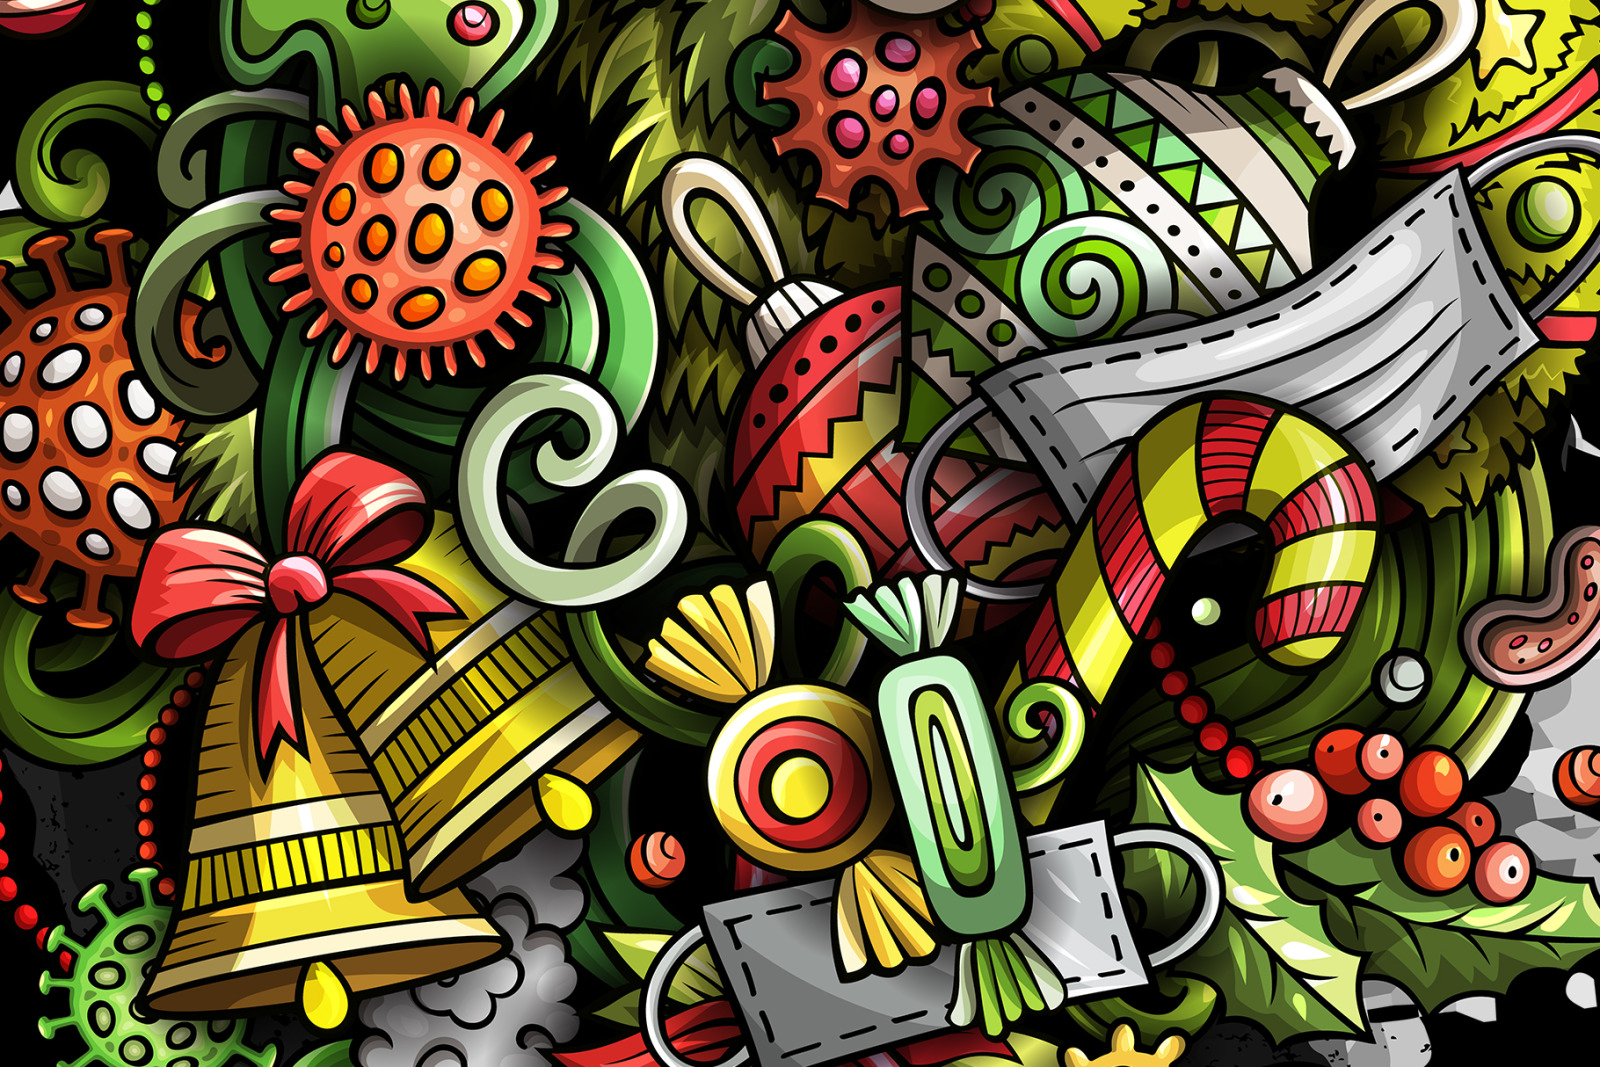 New Year in Pandemic Cartoon Doodle Illustration